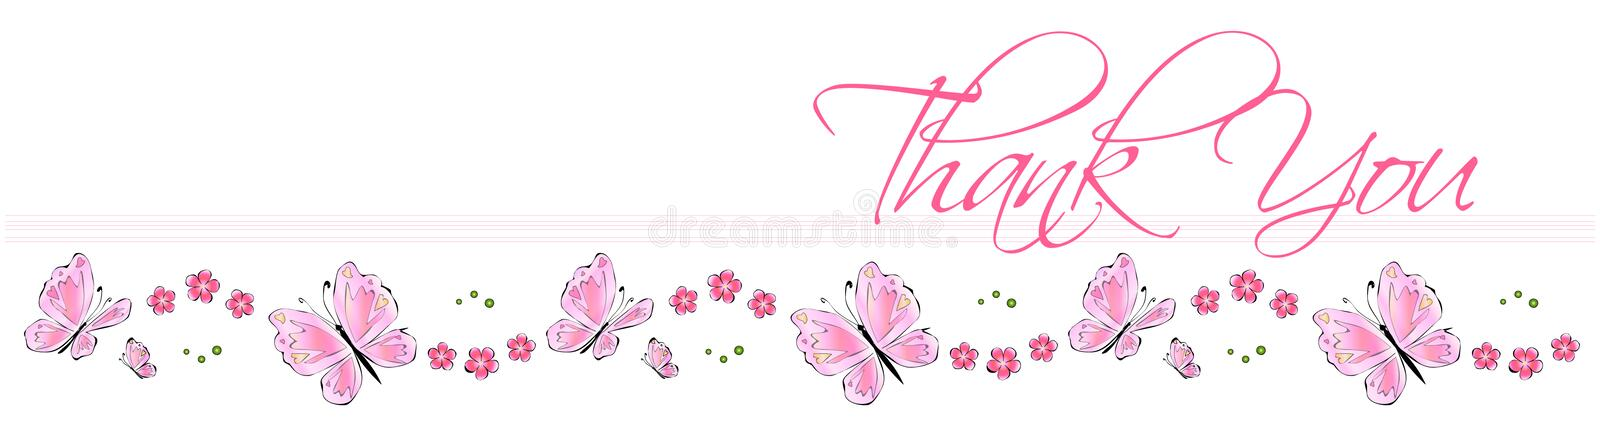 Thank You Butterfly Card stock illustration